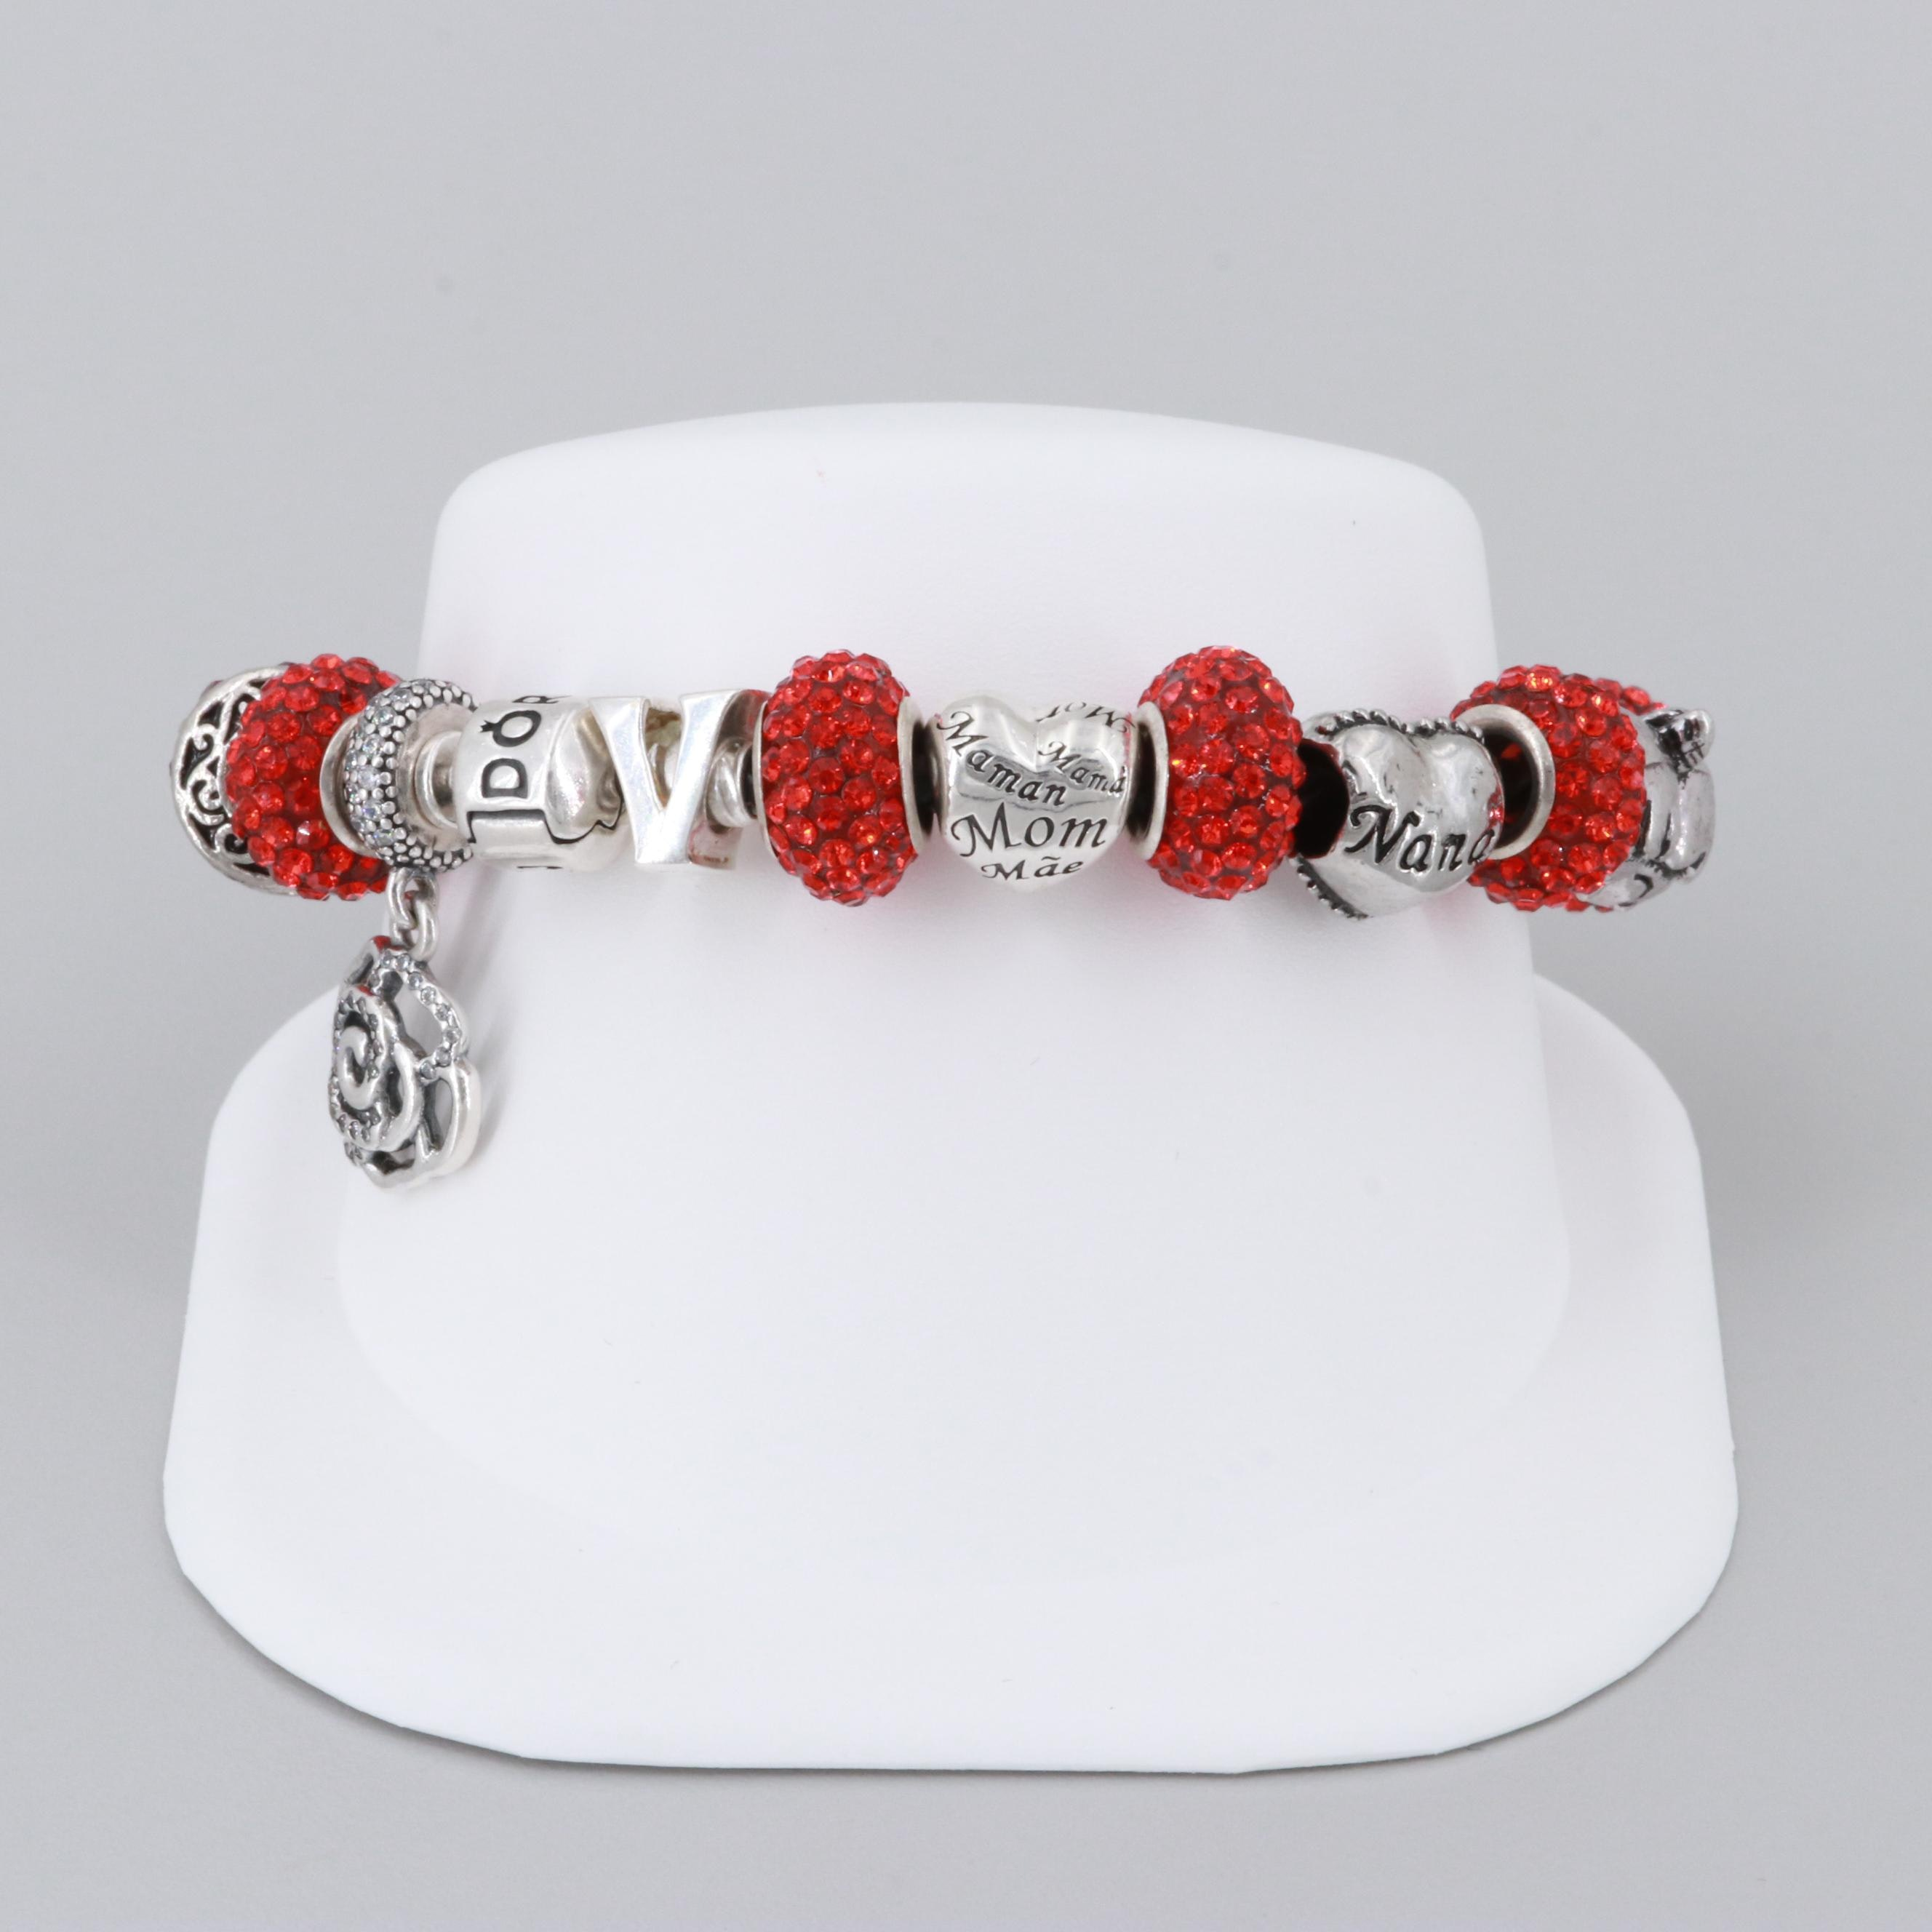 Pandora and Charm Leather Bracelet Including Sterling Silver and Cubic Zirconia